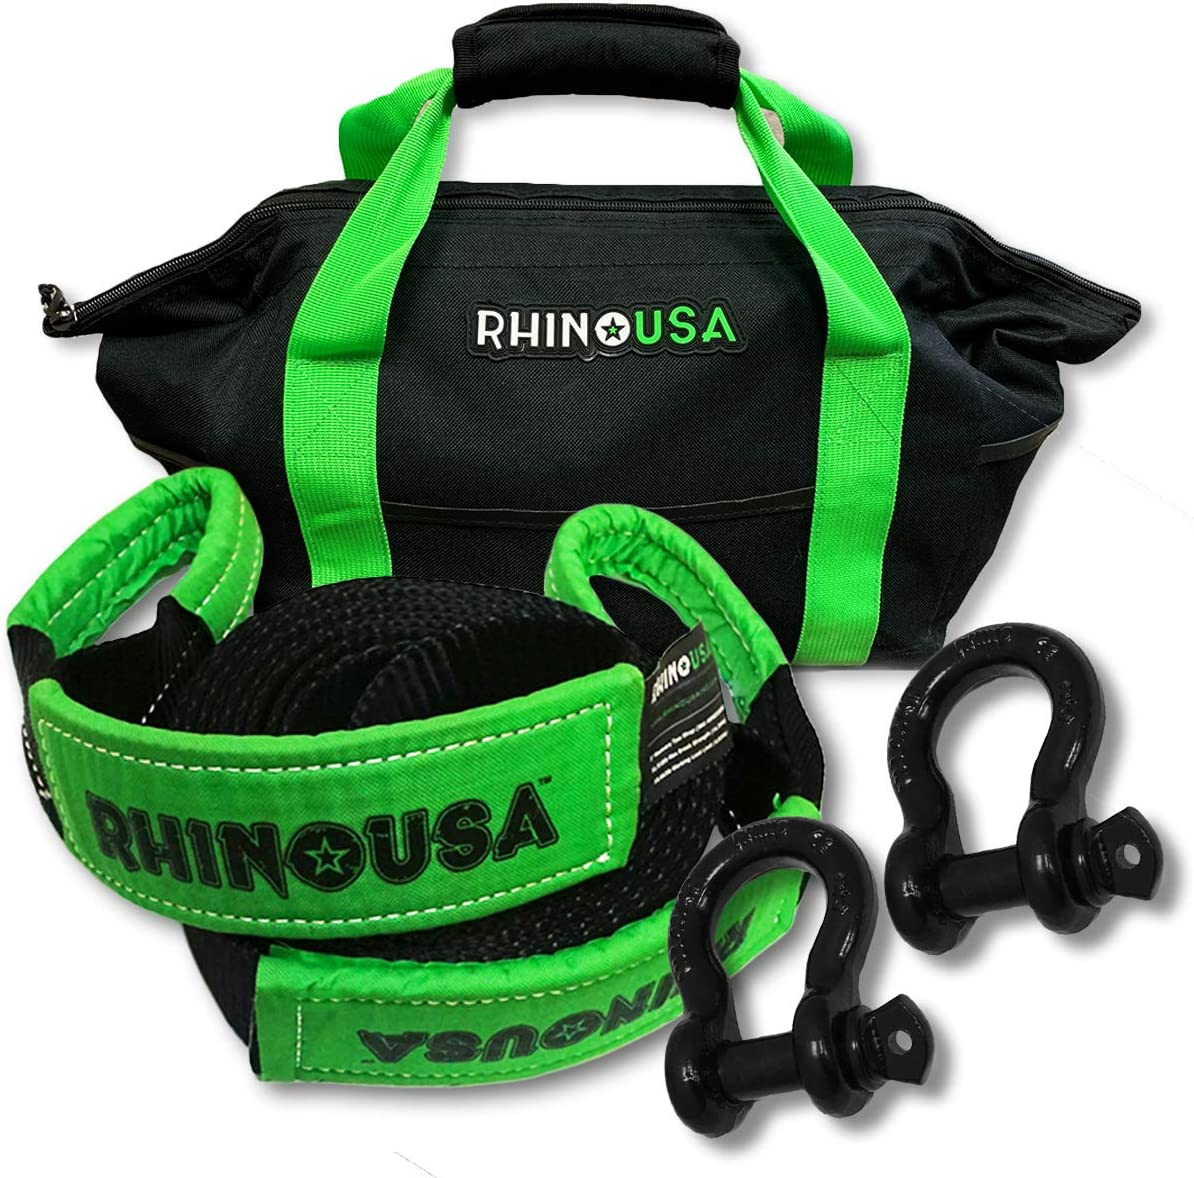 Rhino USA Heavy-Duty Max 72% OFF Recovery Gear Strap + Ranking integrated 1st place 30' Shackles Combos